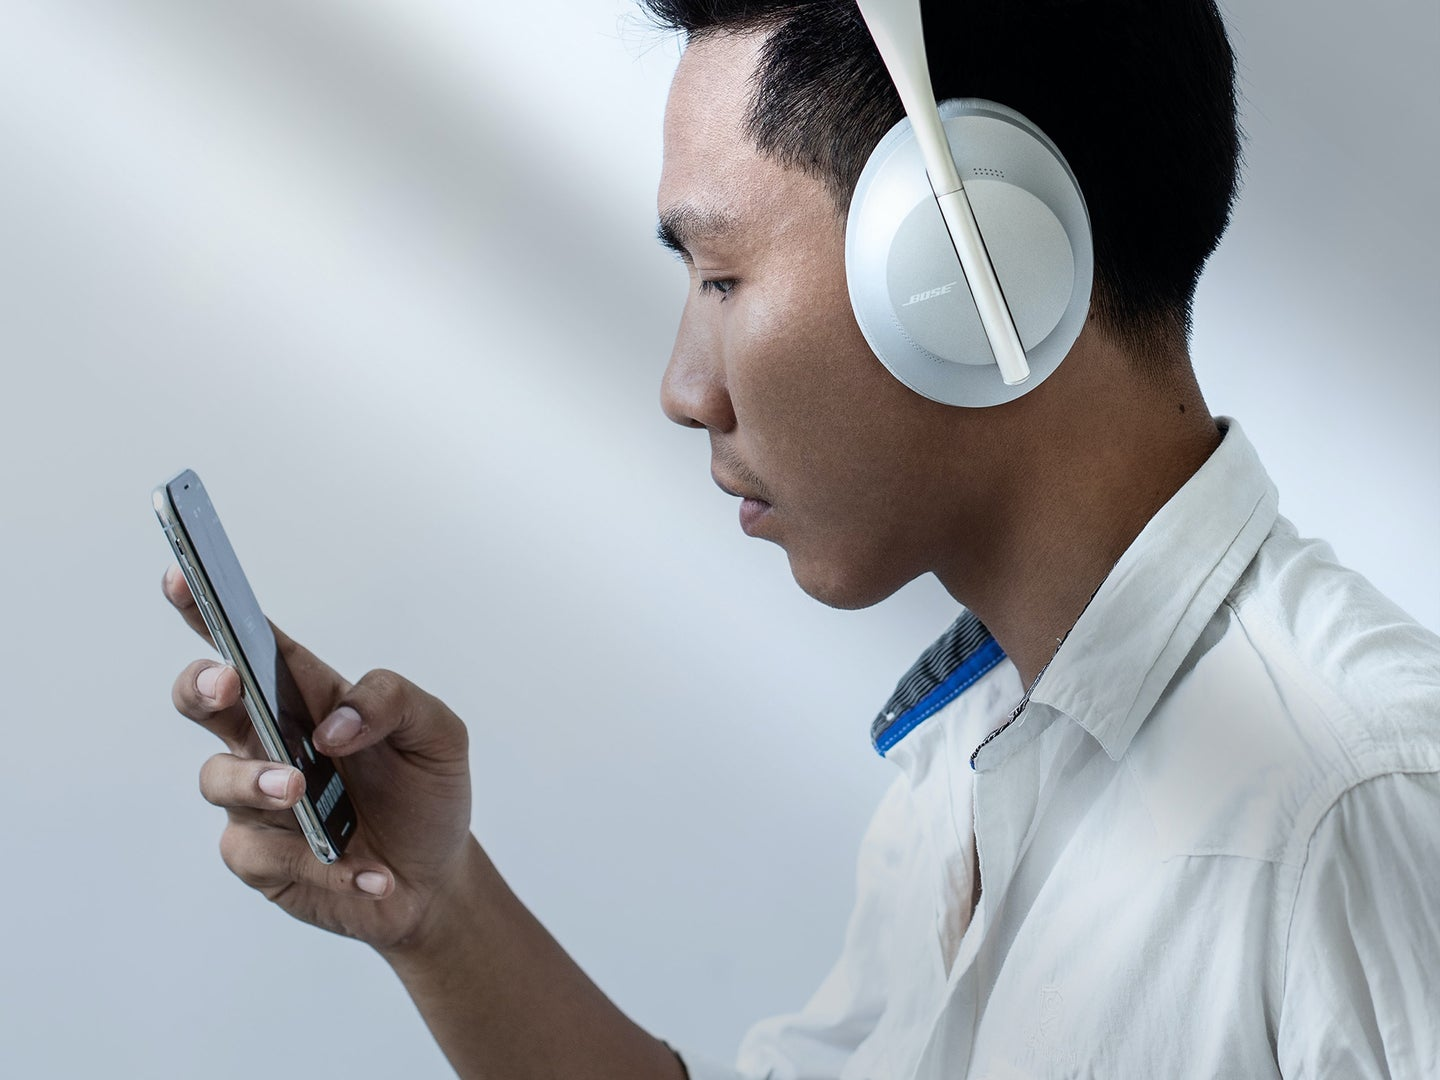 Person with headphones playing audio on smartphone